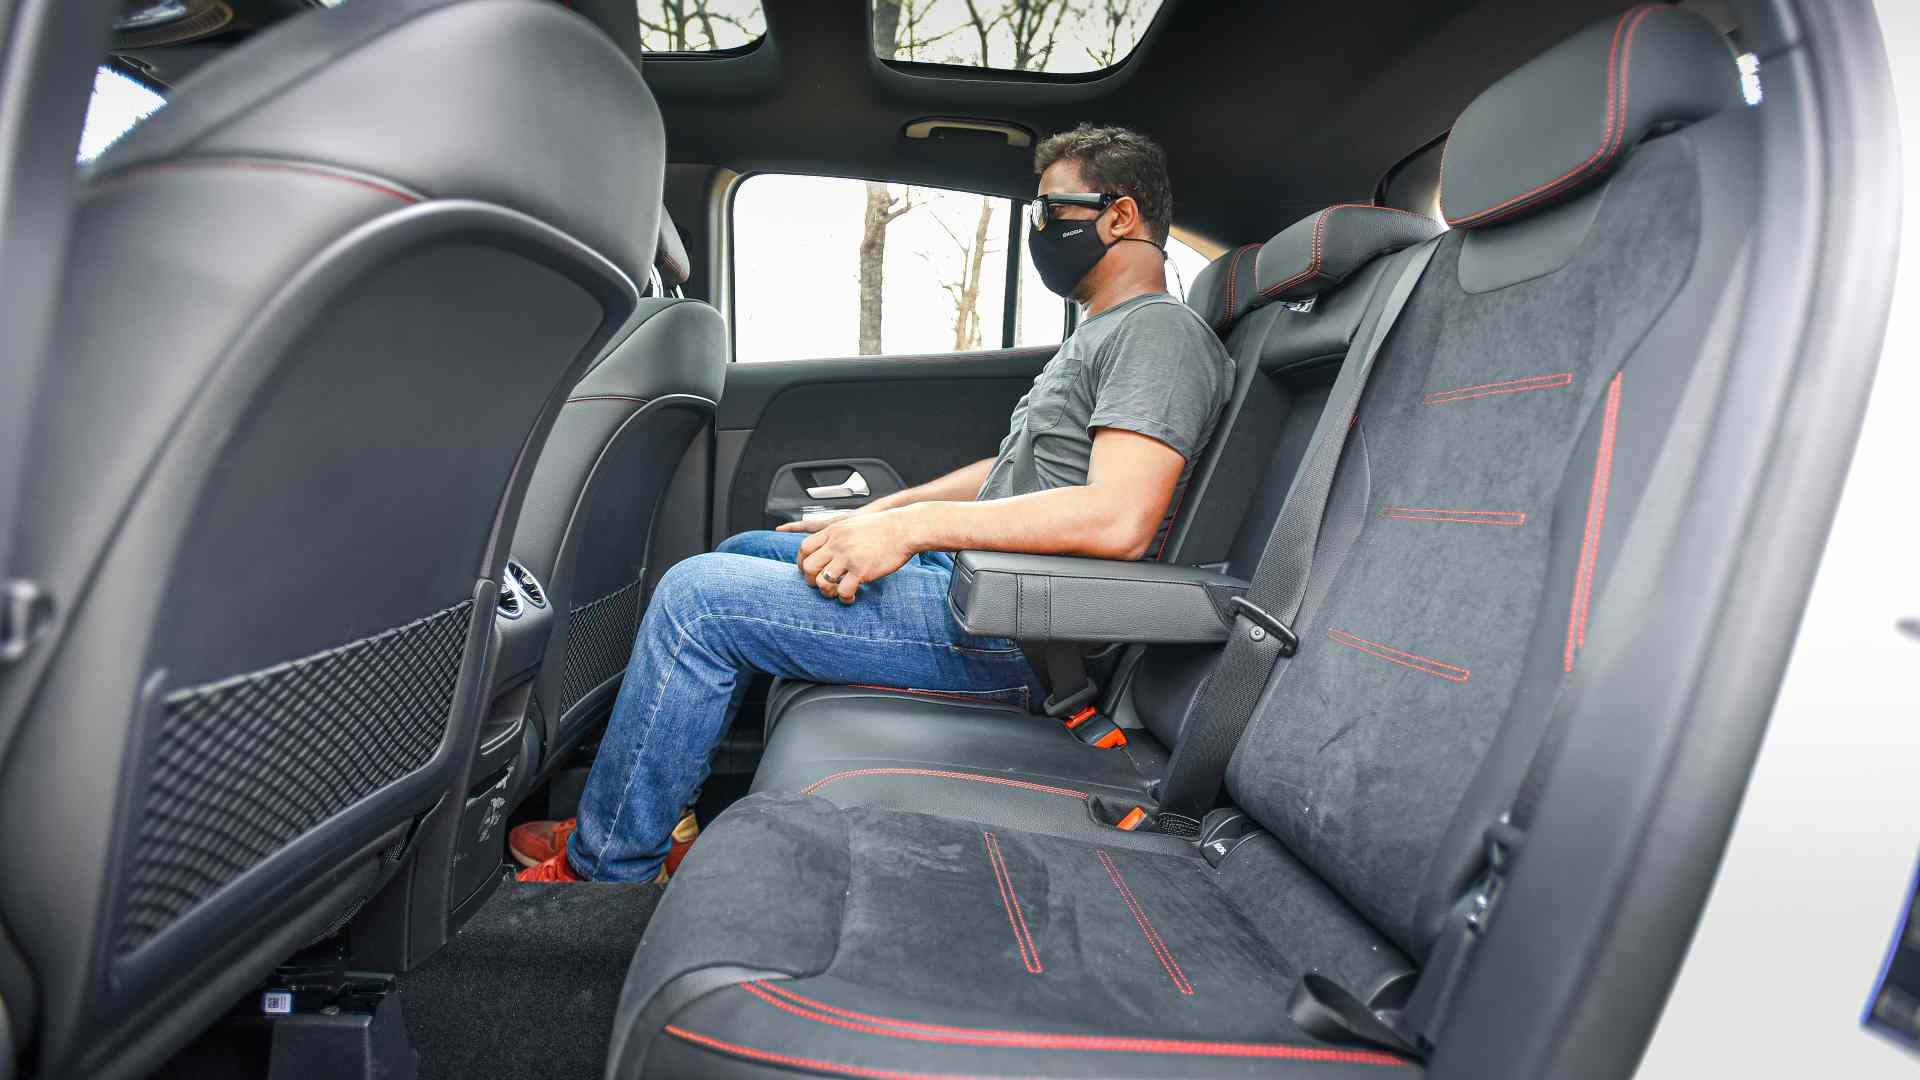 Rear-seat space is not a strength of the new GLA. Image: Overdrive/Anis Shaikh